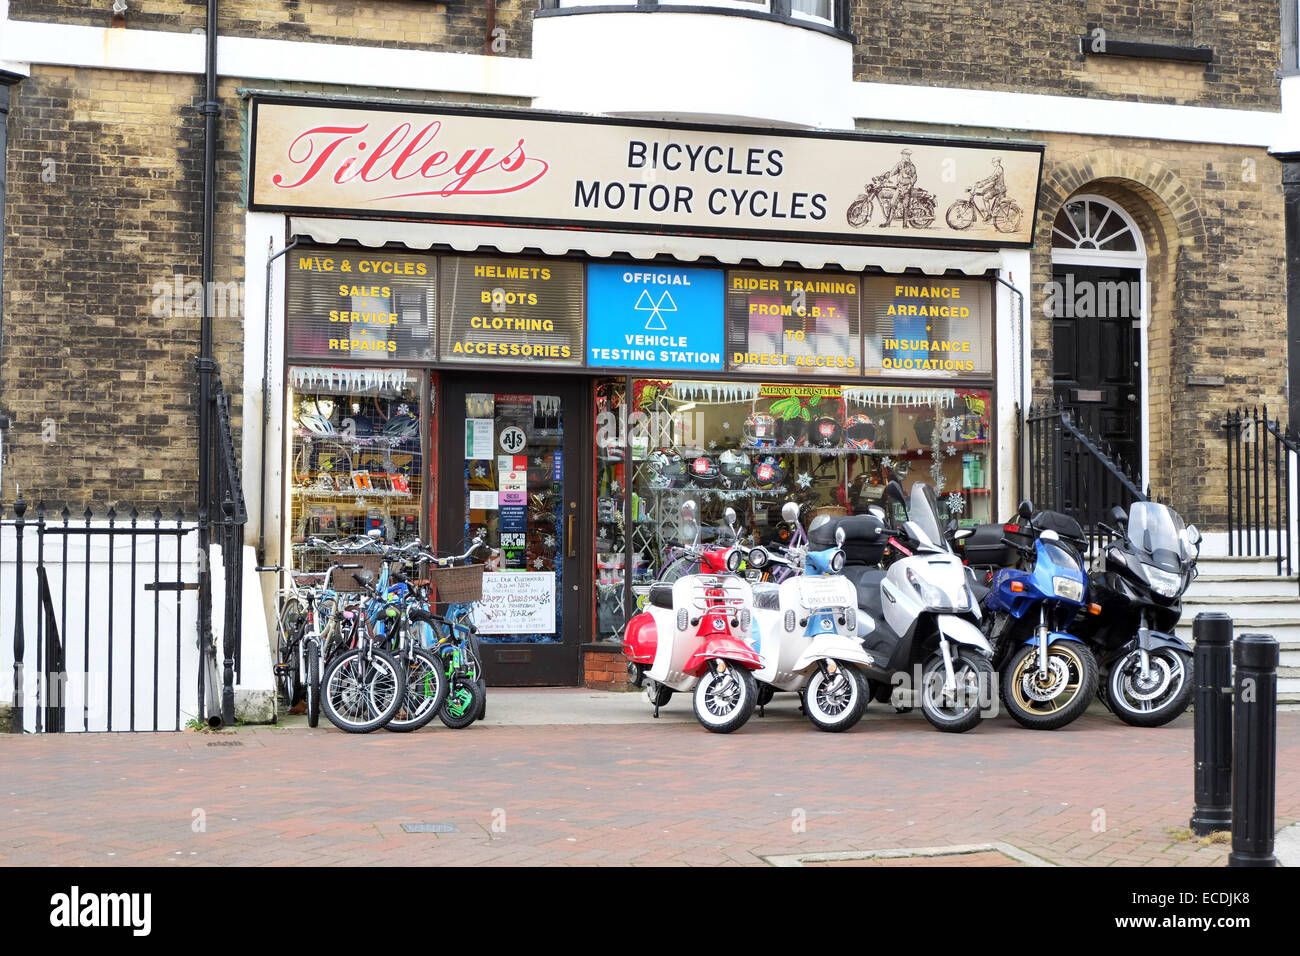 Small motor bike stock photos small motor bike stock for Motor machine shop near me